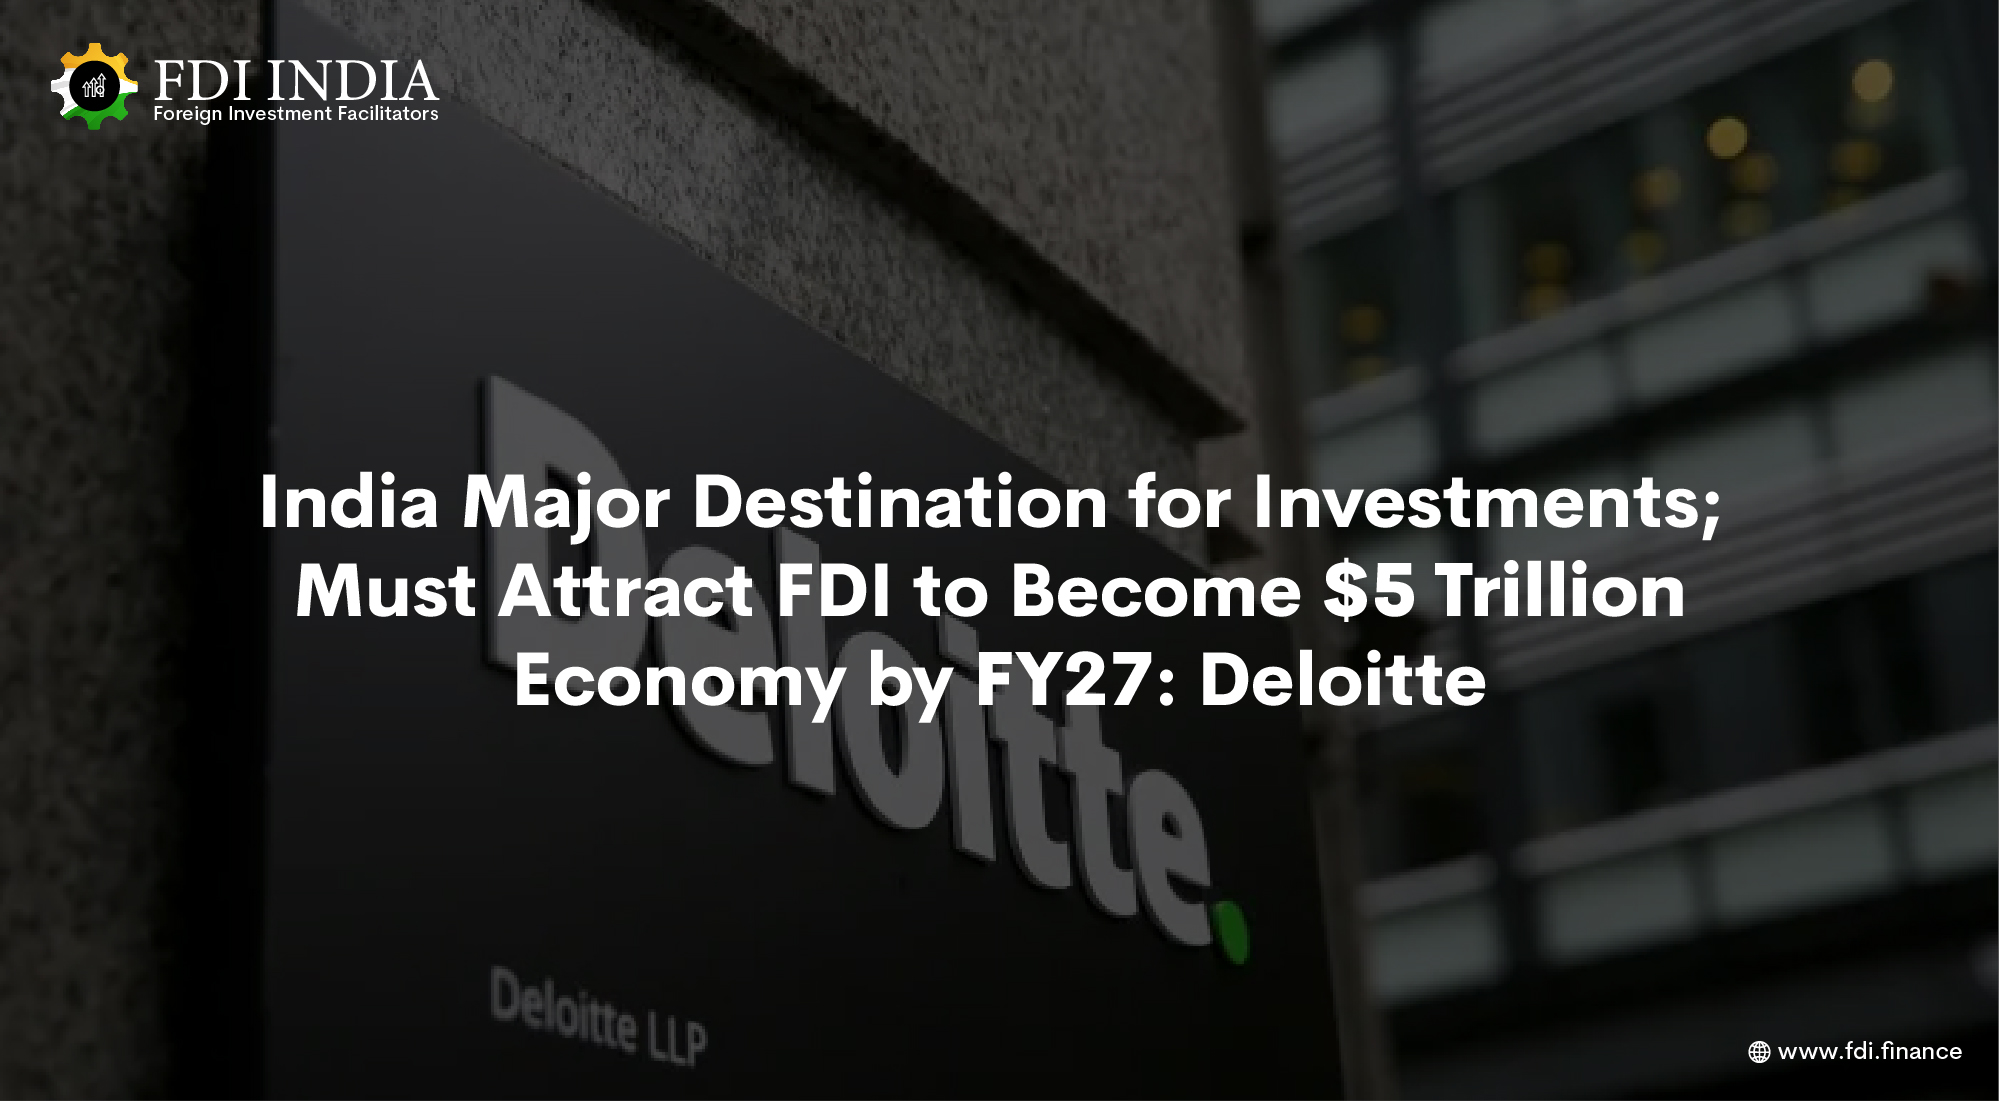 India Major Destination for Investments; Must Attract FDI to Become $5 Trillion Economy by FY27: Deloitte